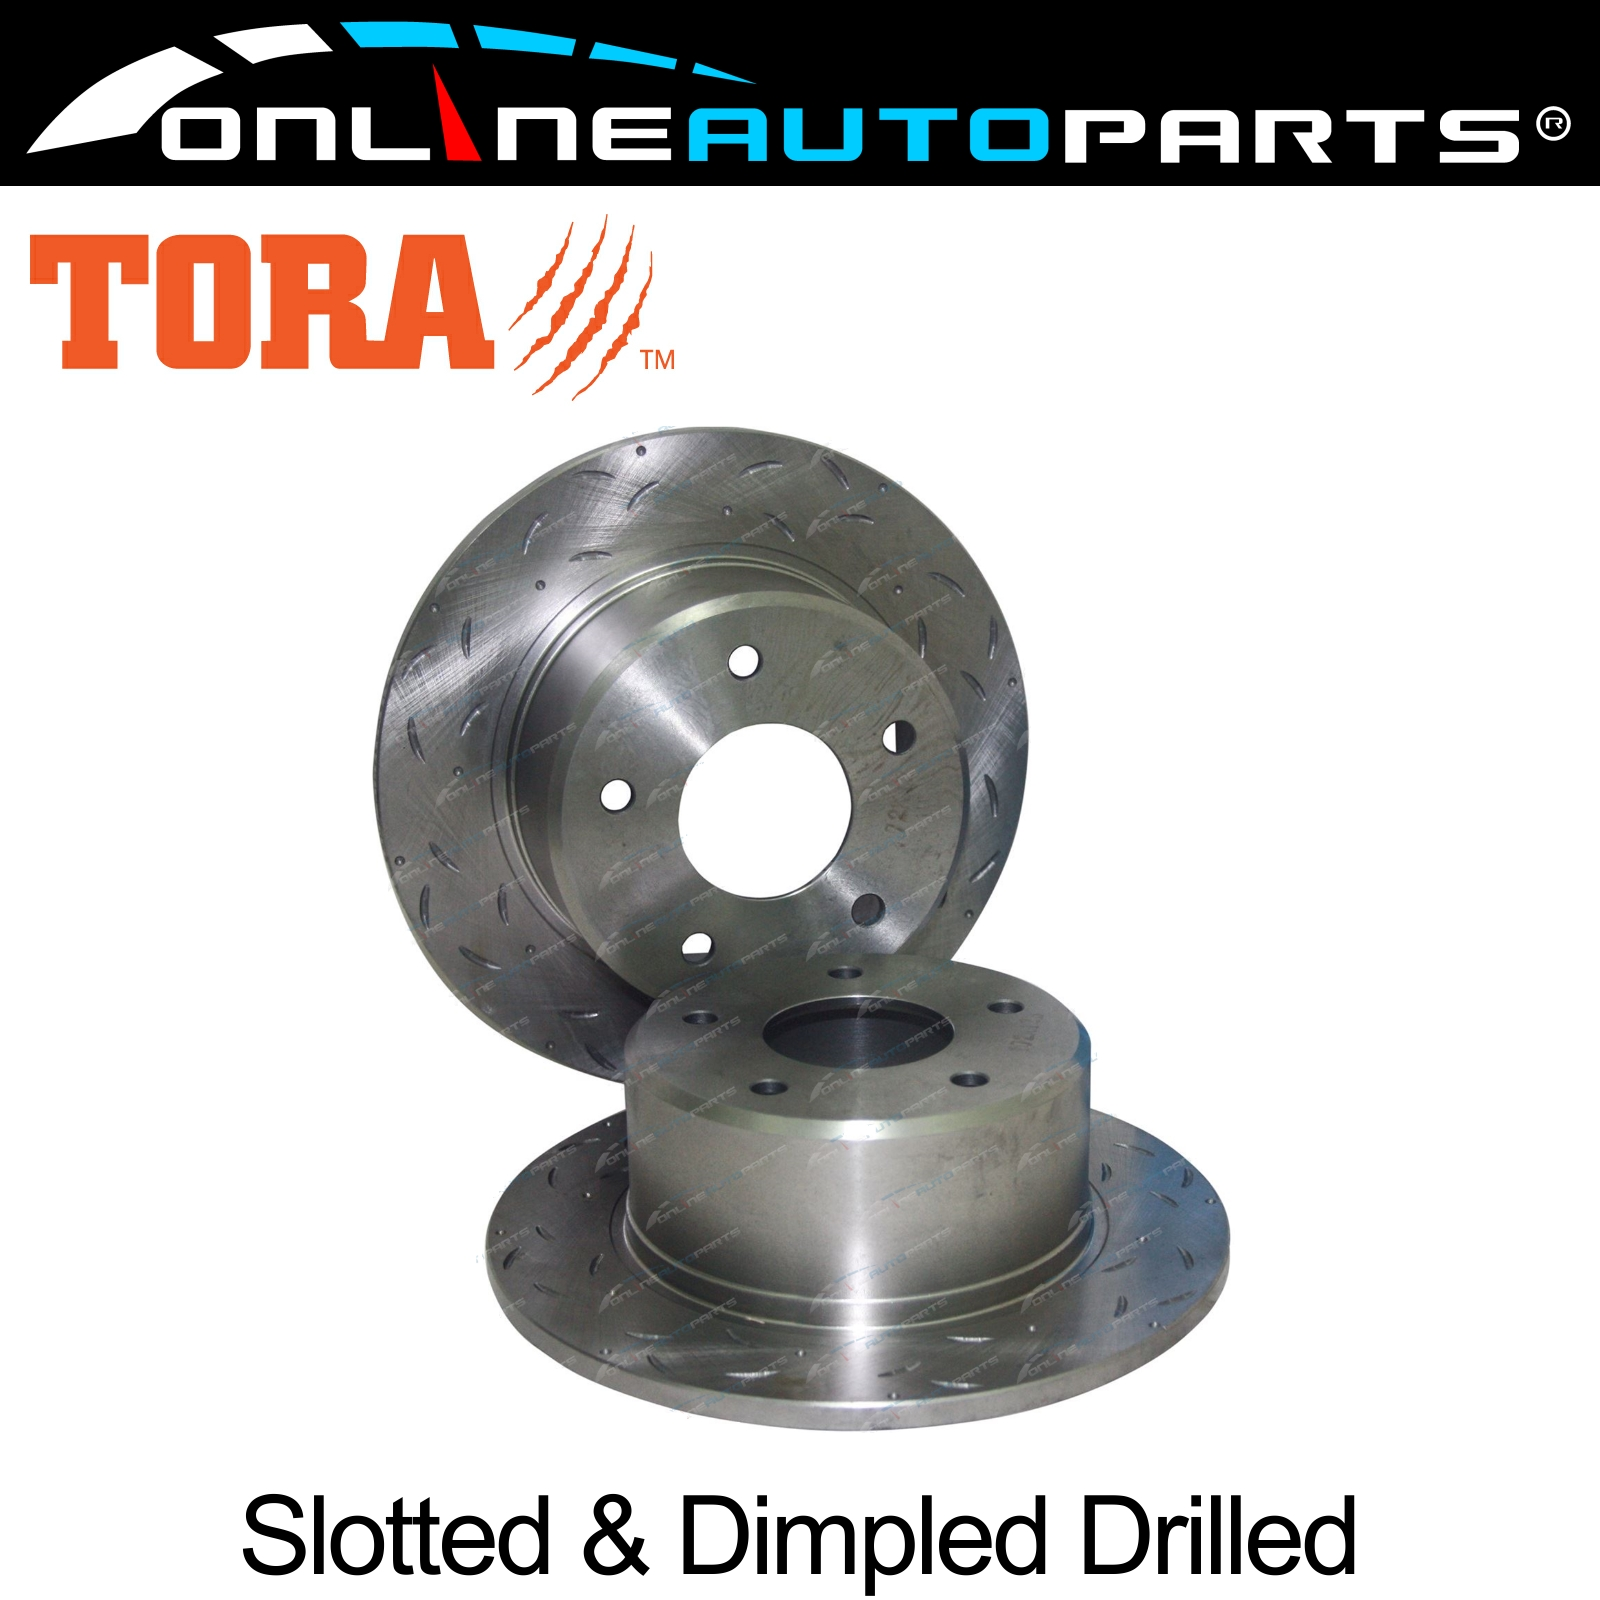 2-Rear-Disc-Brake-Rotors-Slotted-Drilled-Commodore-VR-VS-with-IRS-Statesman